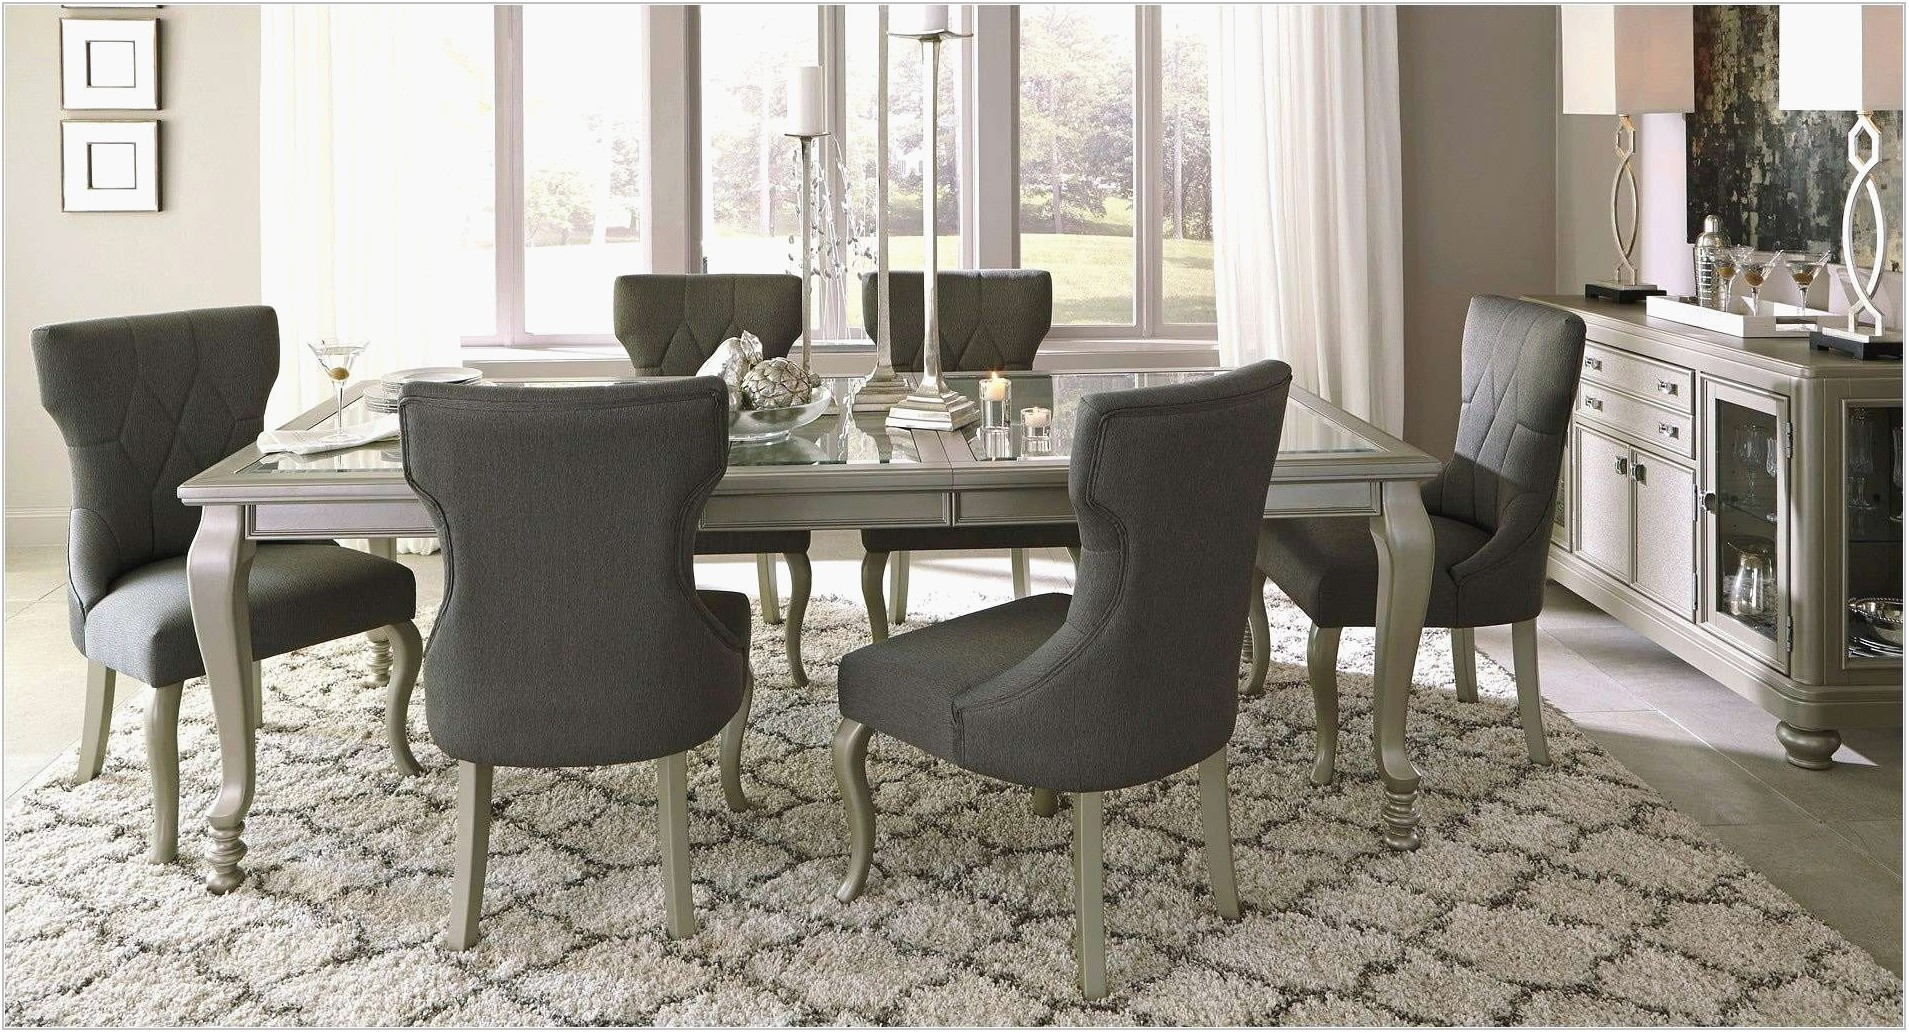 Circular Glass Dining Room Table